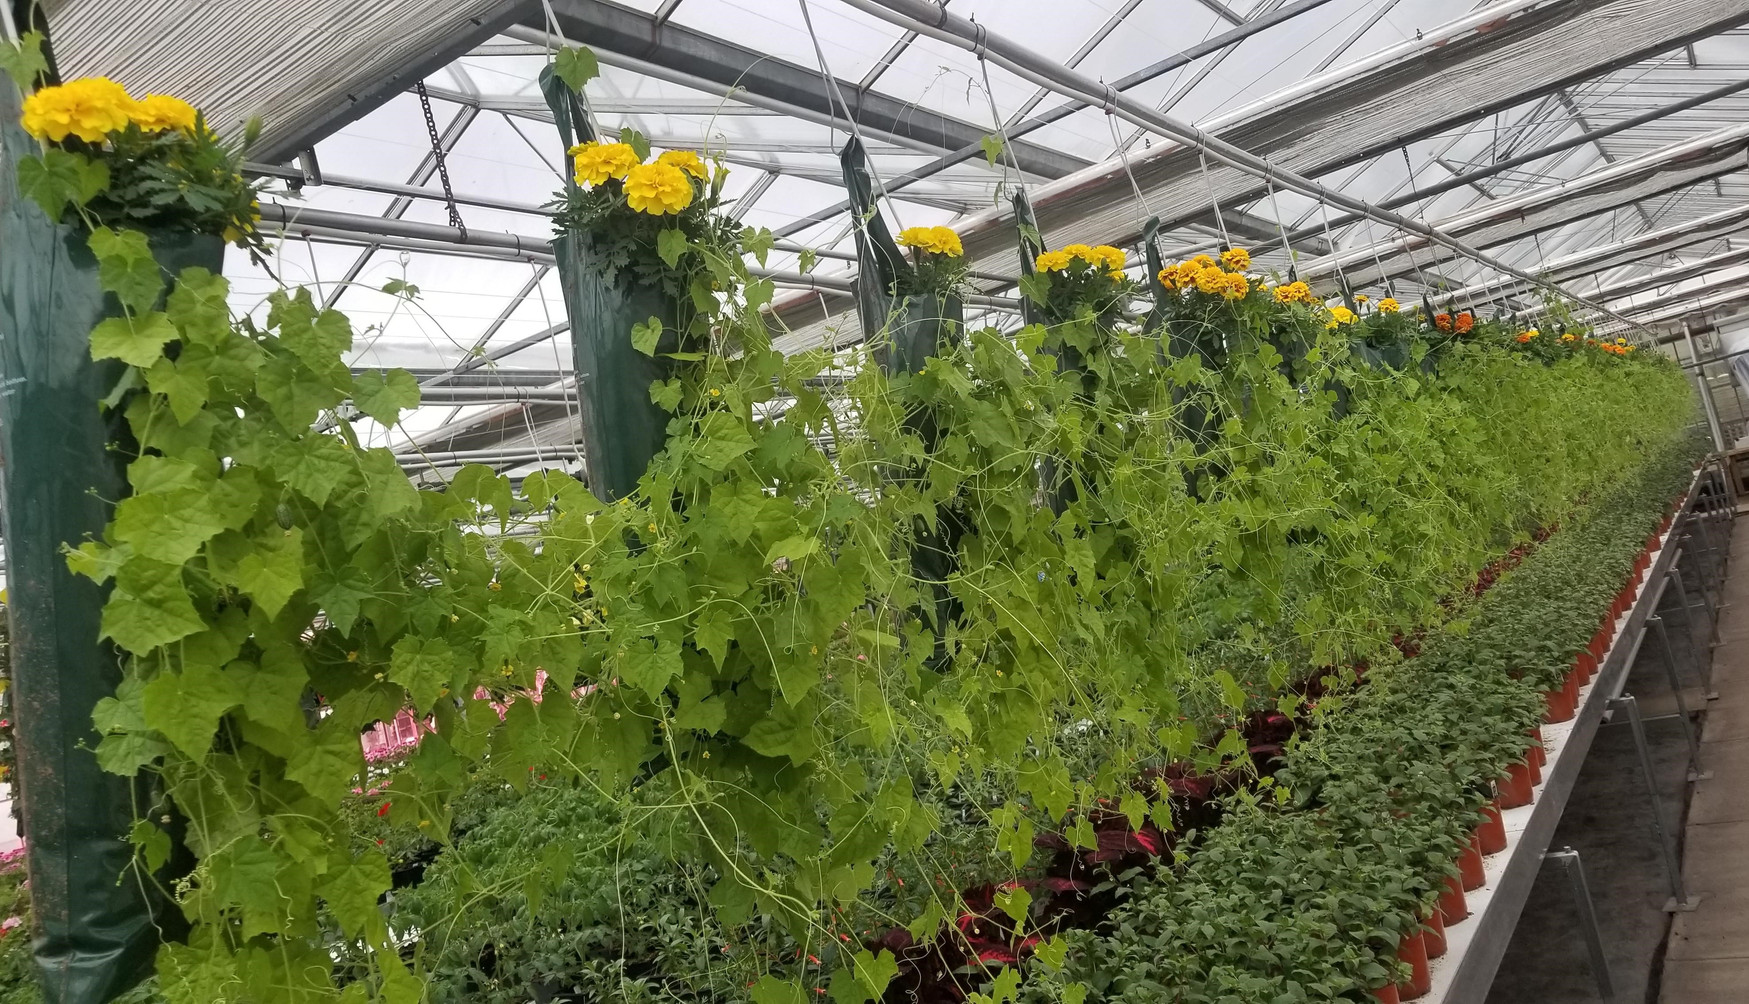 Getting creative with cucamelon @ Thiel's Greenhouses